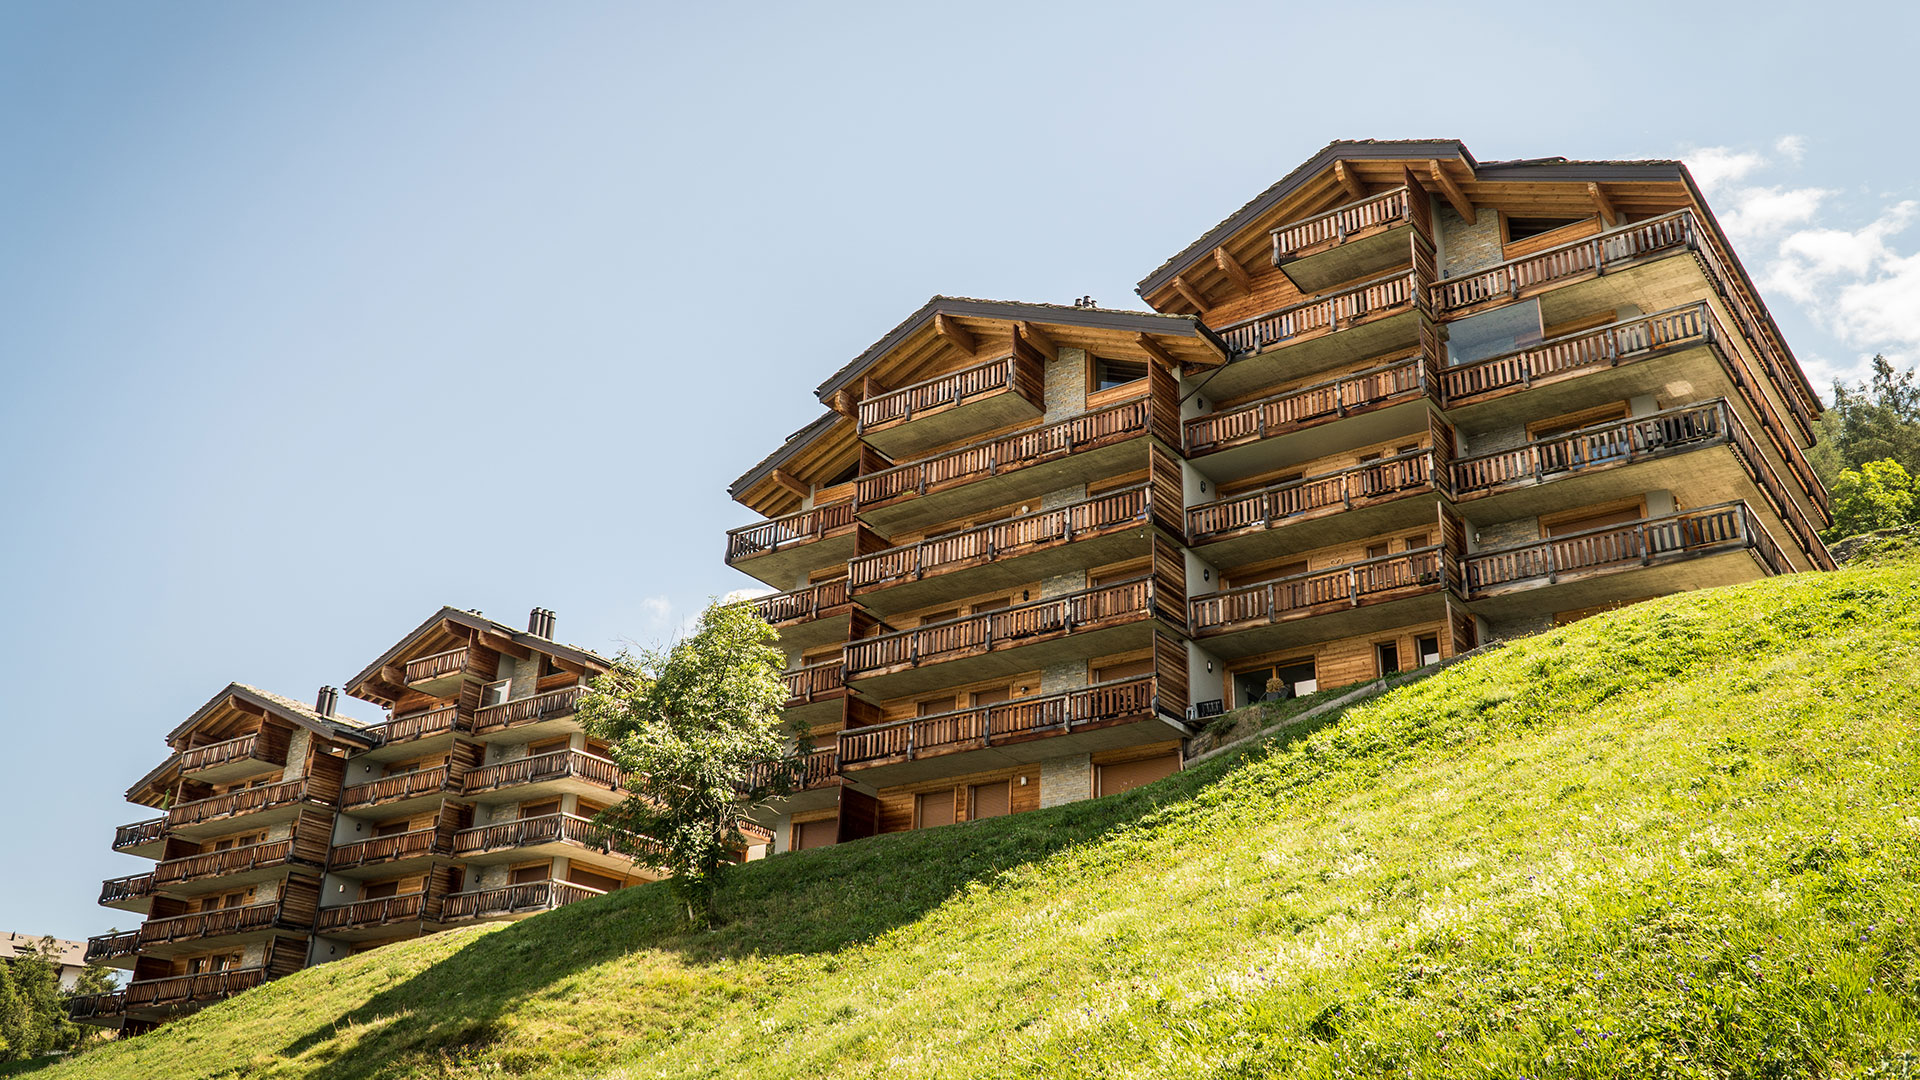 Fontanettes 51 Apartments, Switzerland